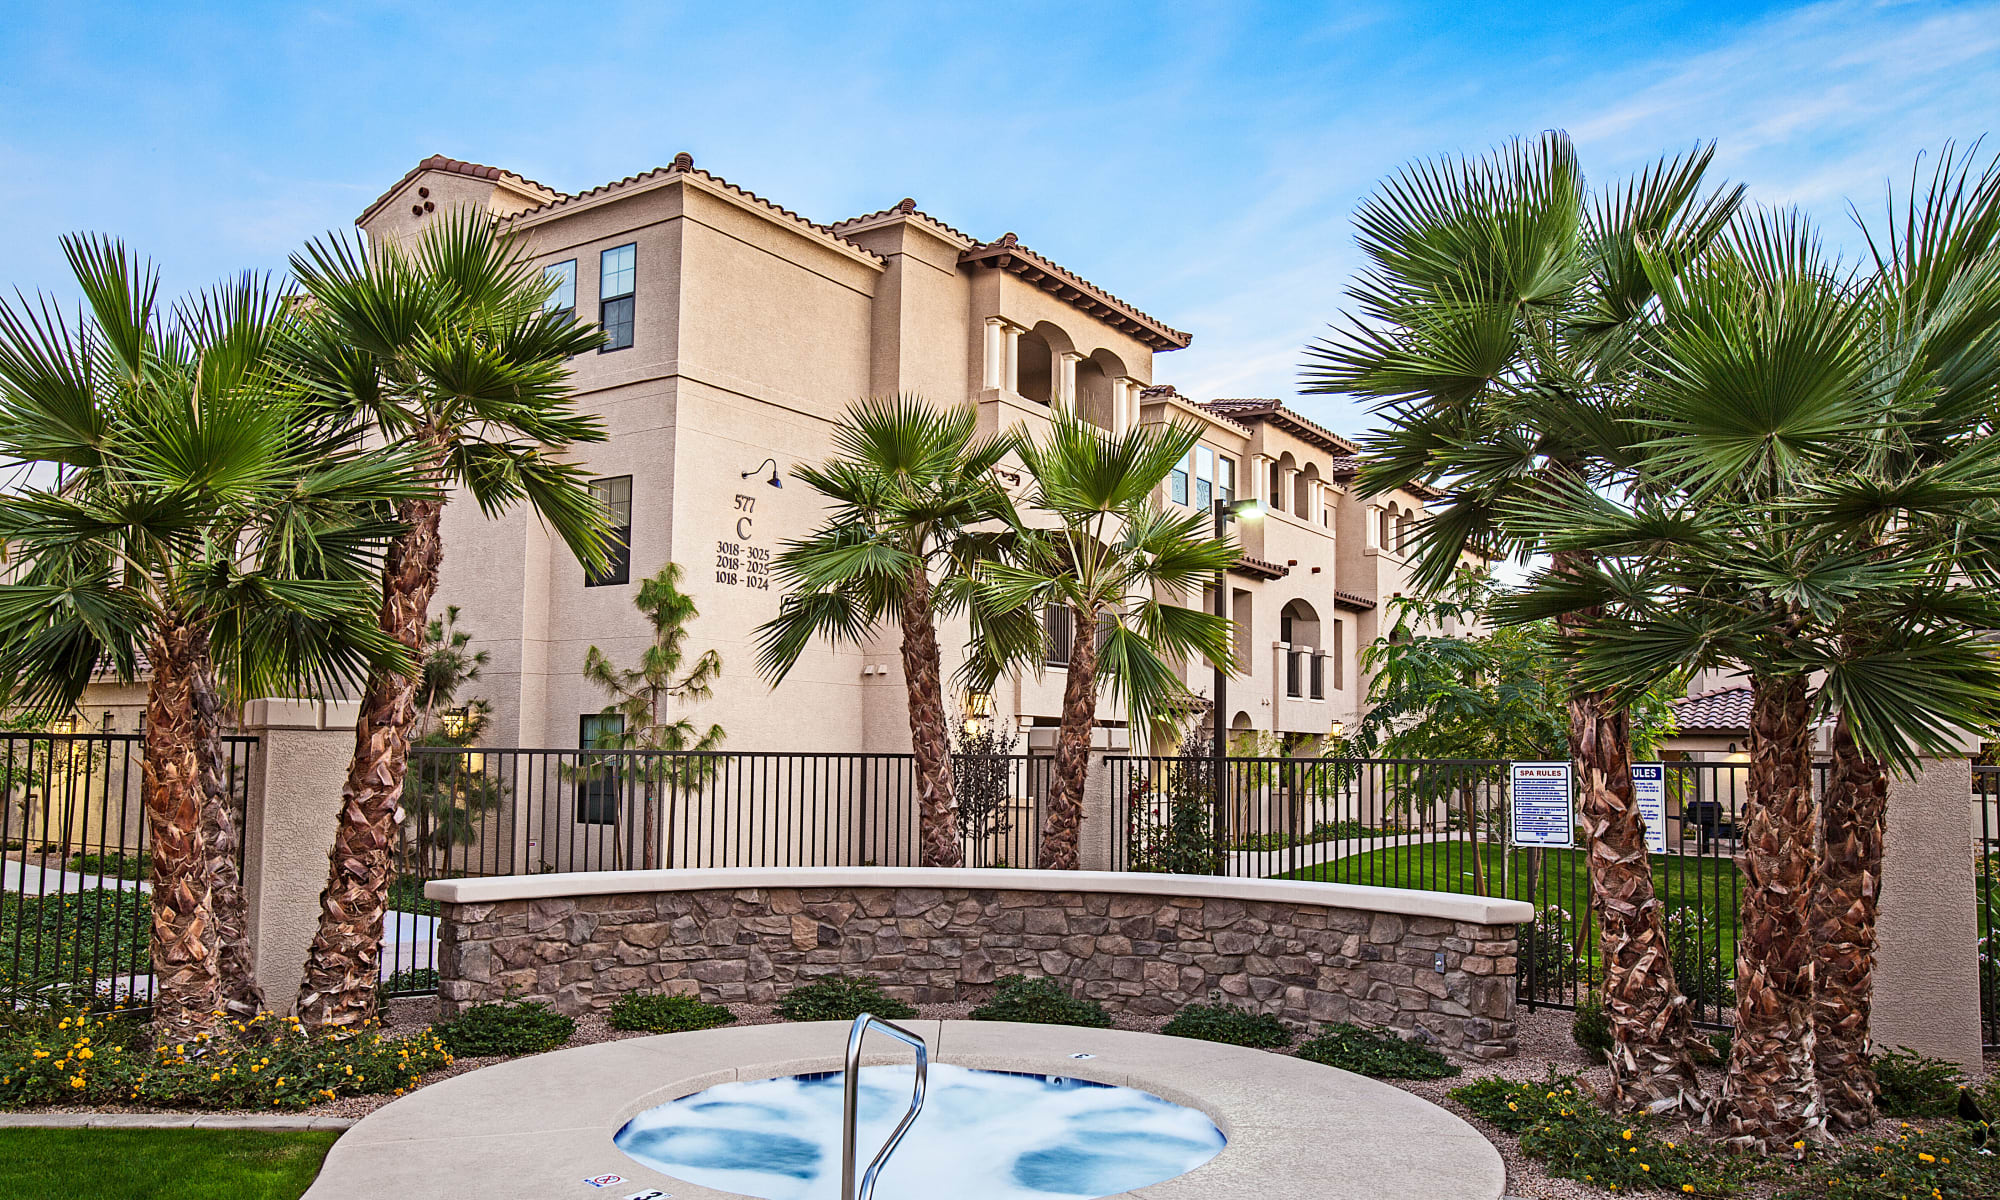 Contact us for more information at San Marquis, with Palm Trees in Tempe, Arizona